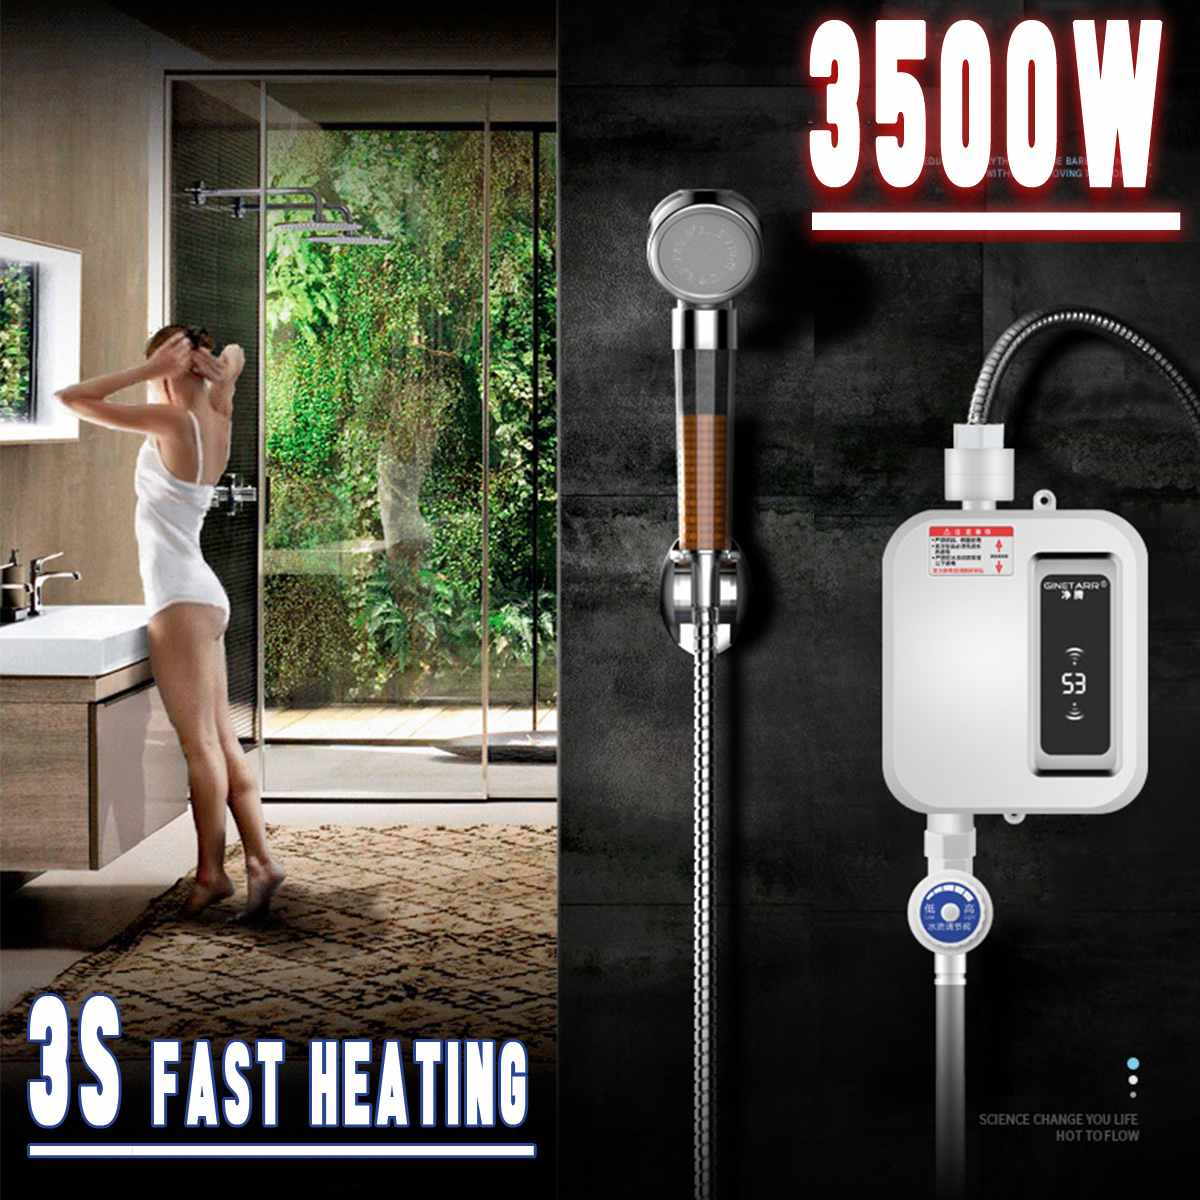 3500W Water Heater Mini Electric Tankless Instant-Hot Water Heater Kitchen Faucet Tap Heating Waterproof Thermostat Intelligent